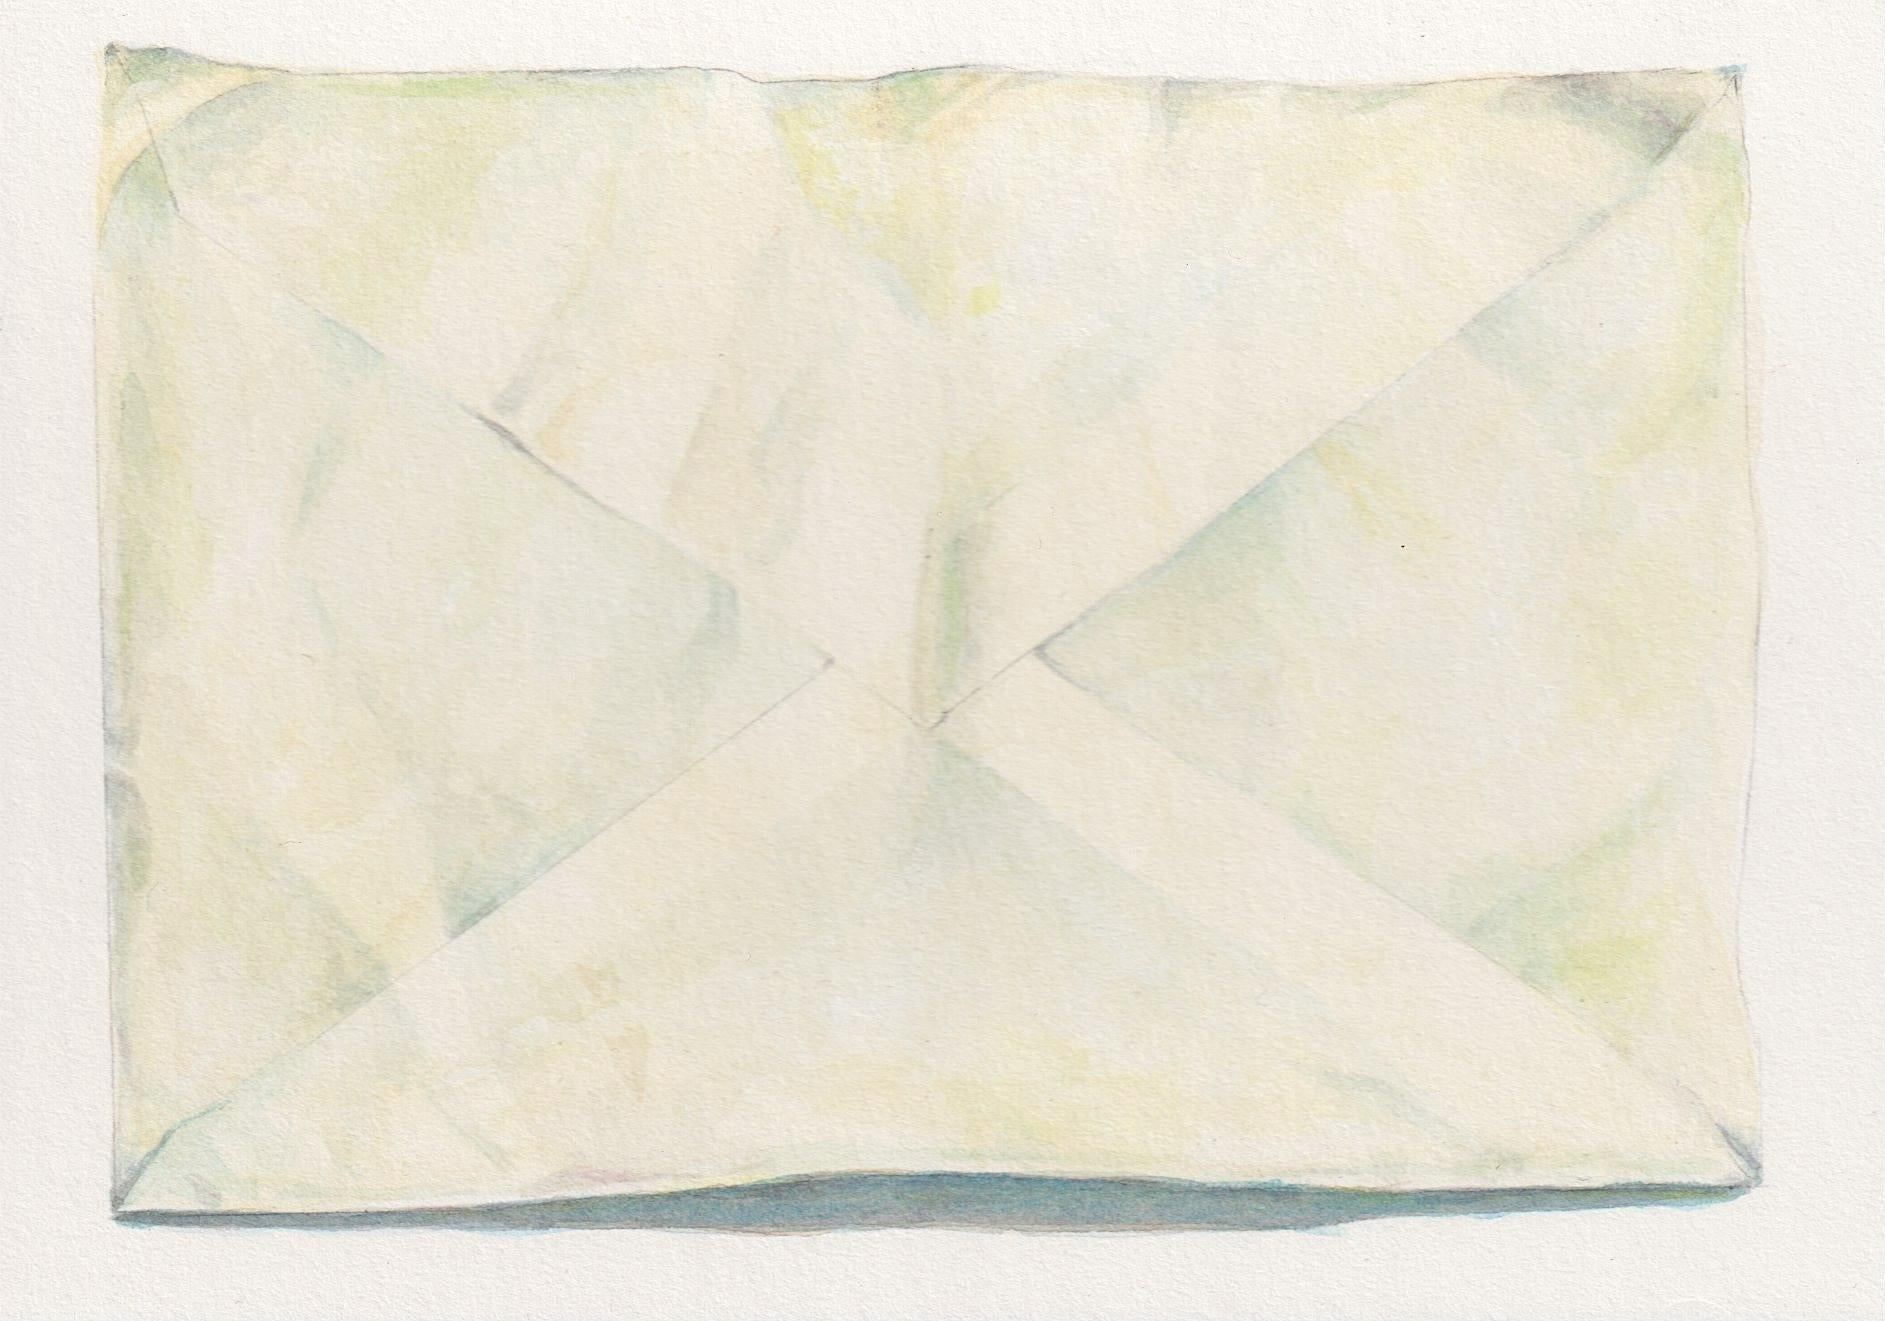 Sealed Envelope, contemporary realist watercolor still life